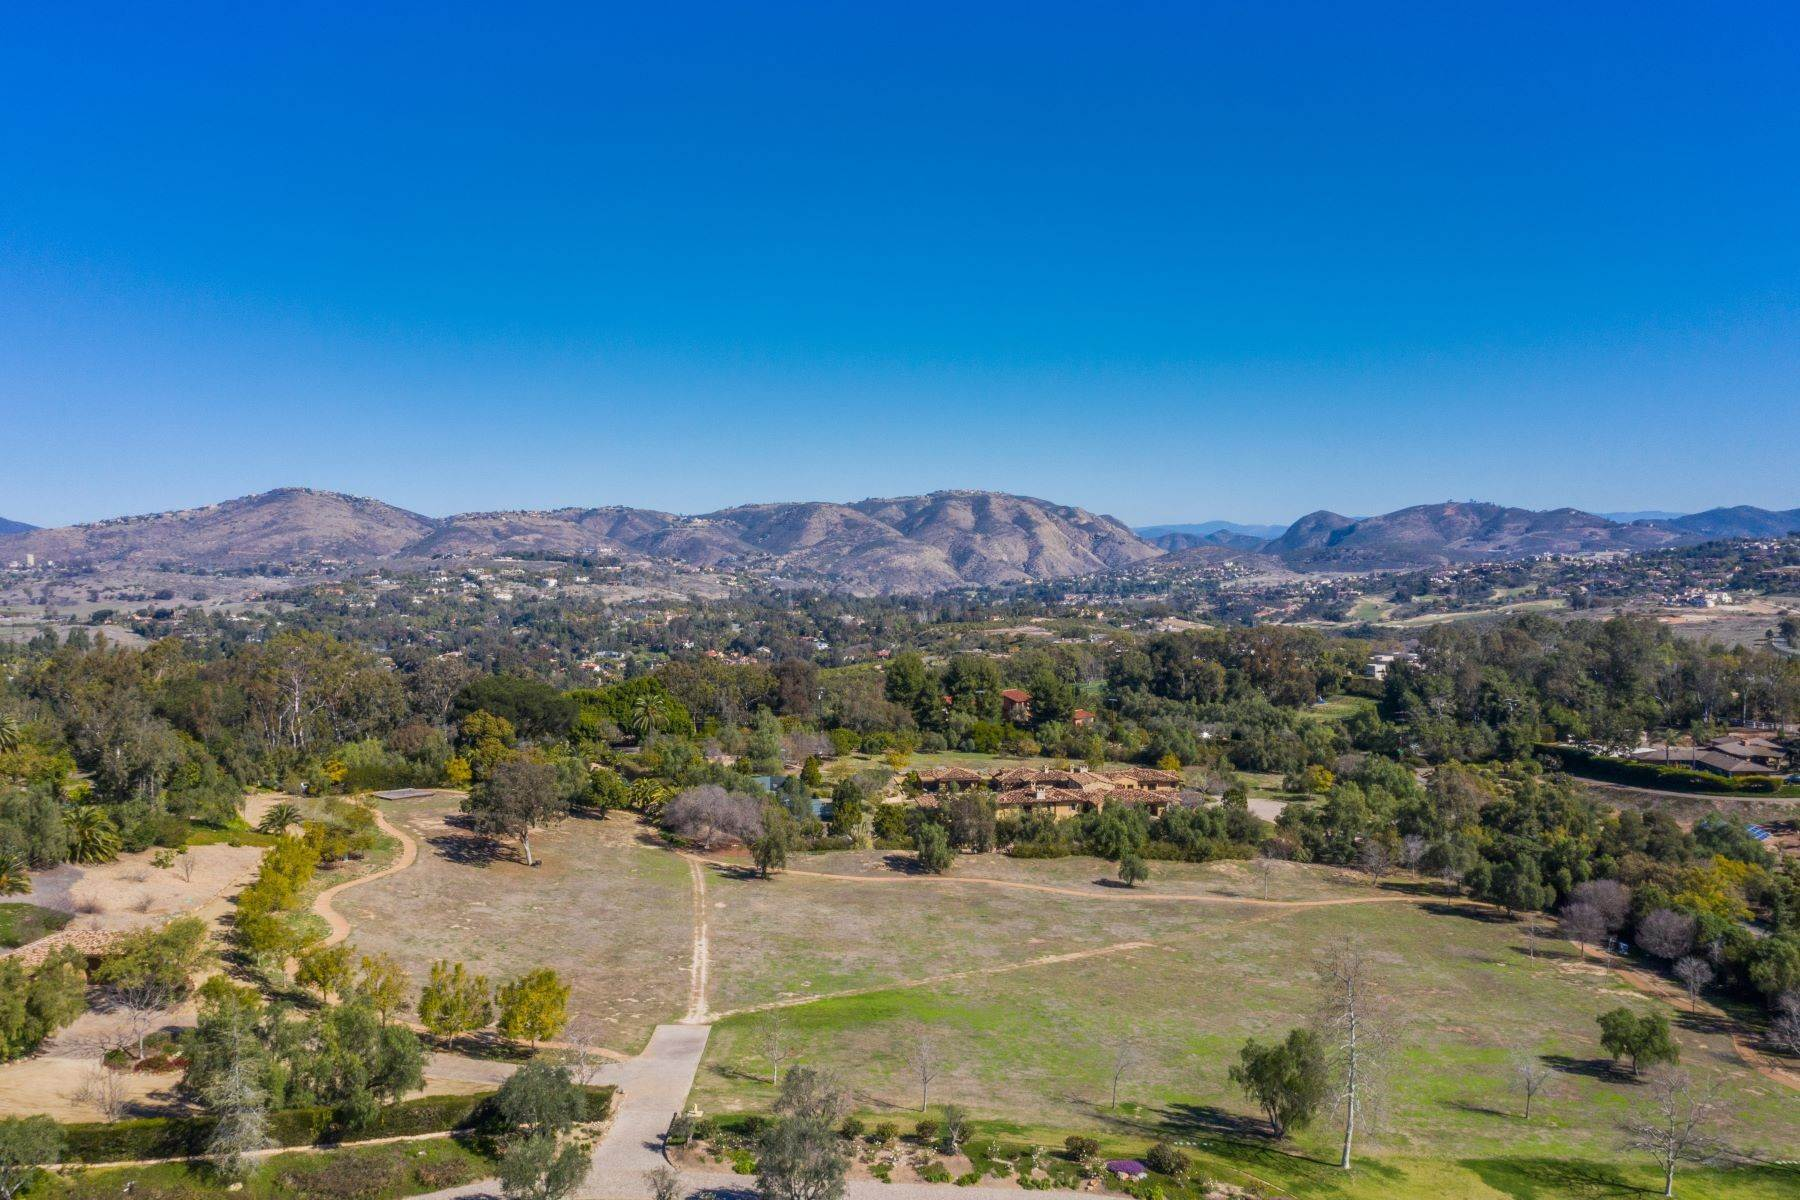 12. Land for Sale at 17048 El Mirador, Rancho Santa Fe, CA 92067 17048 El Mirador Rancho Santa Fe, California 92067 United States